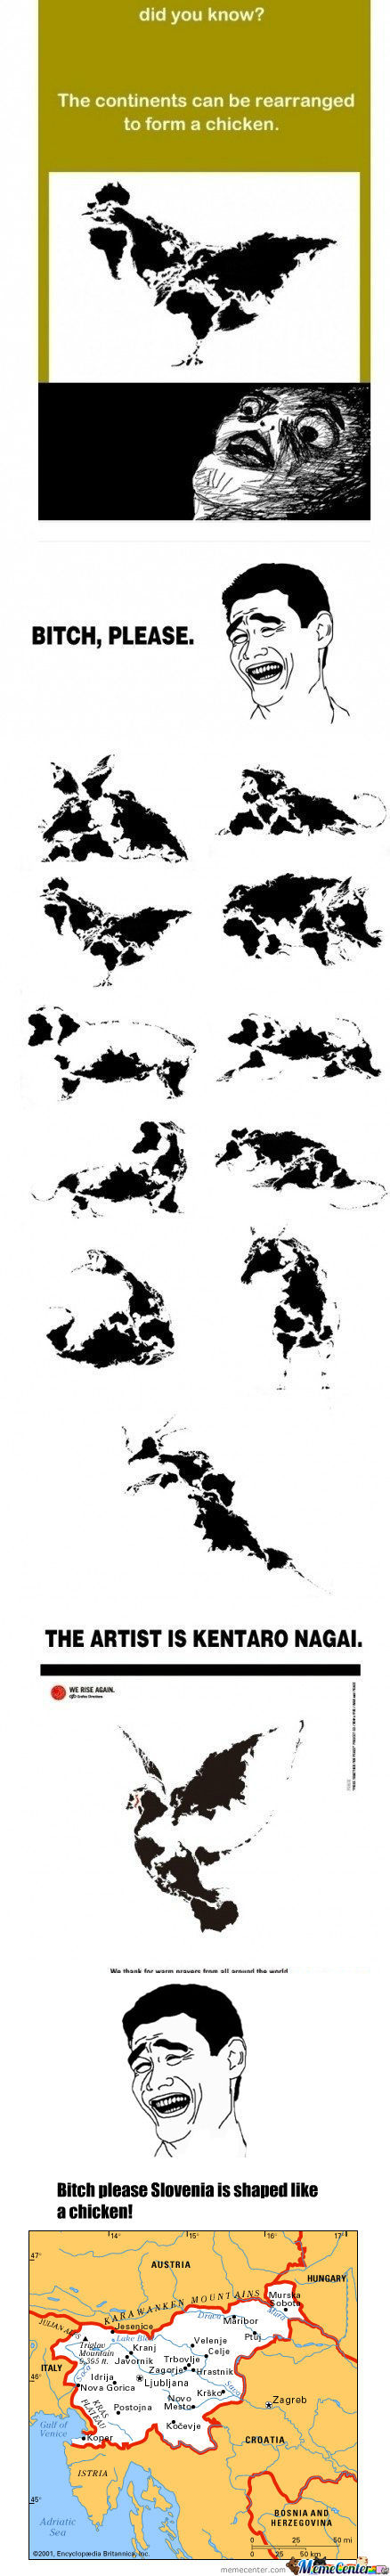 [RMX] The continents can be rearranged to form a chicken Remixed